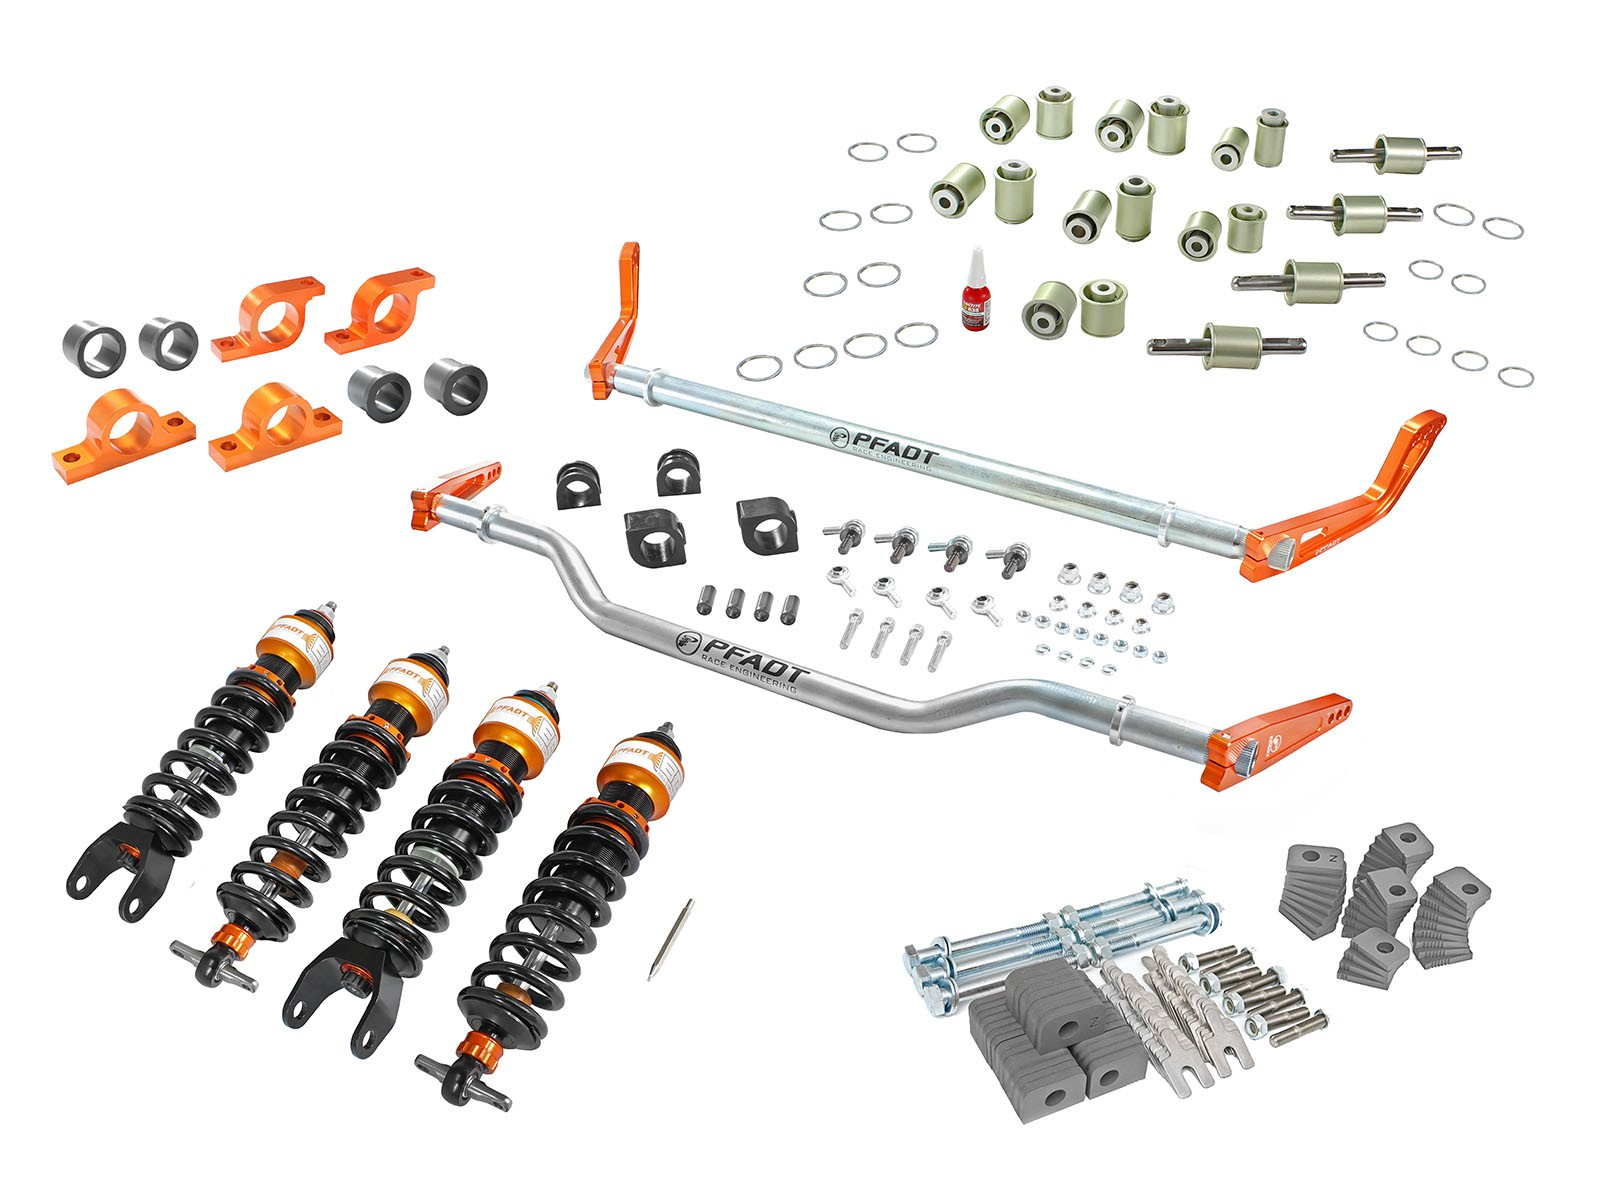 05-13 C6 Corvette aFe Control PFADT Series Stage 3 Suspension Package